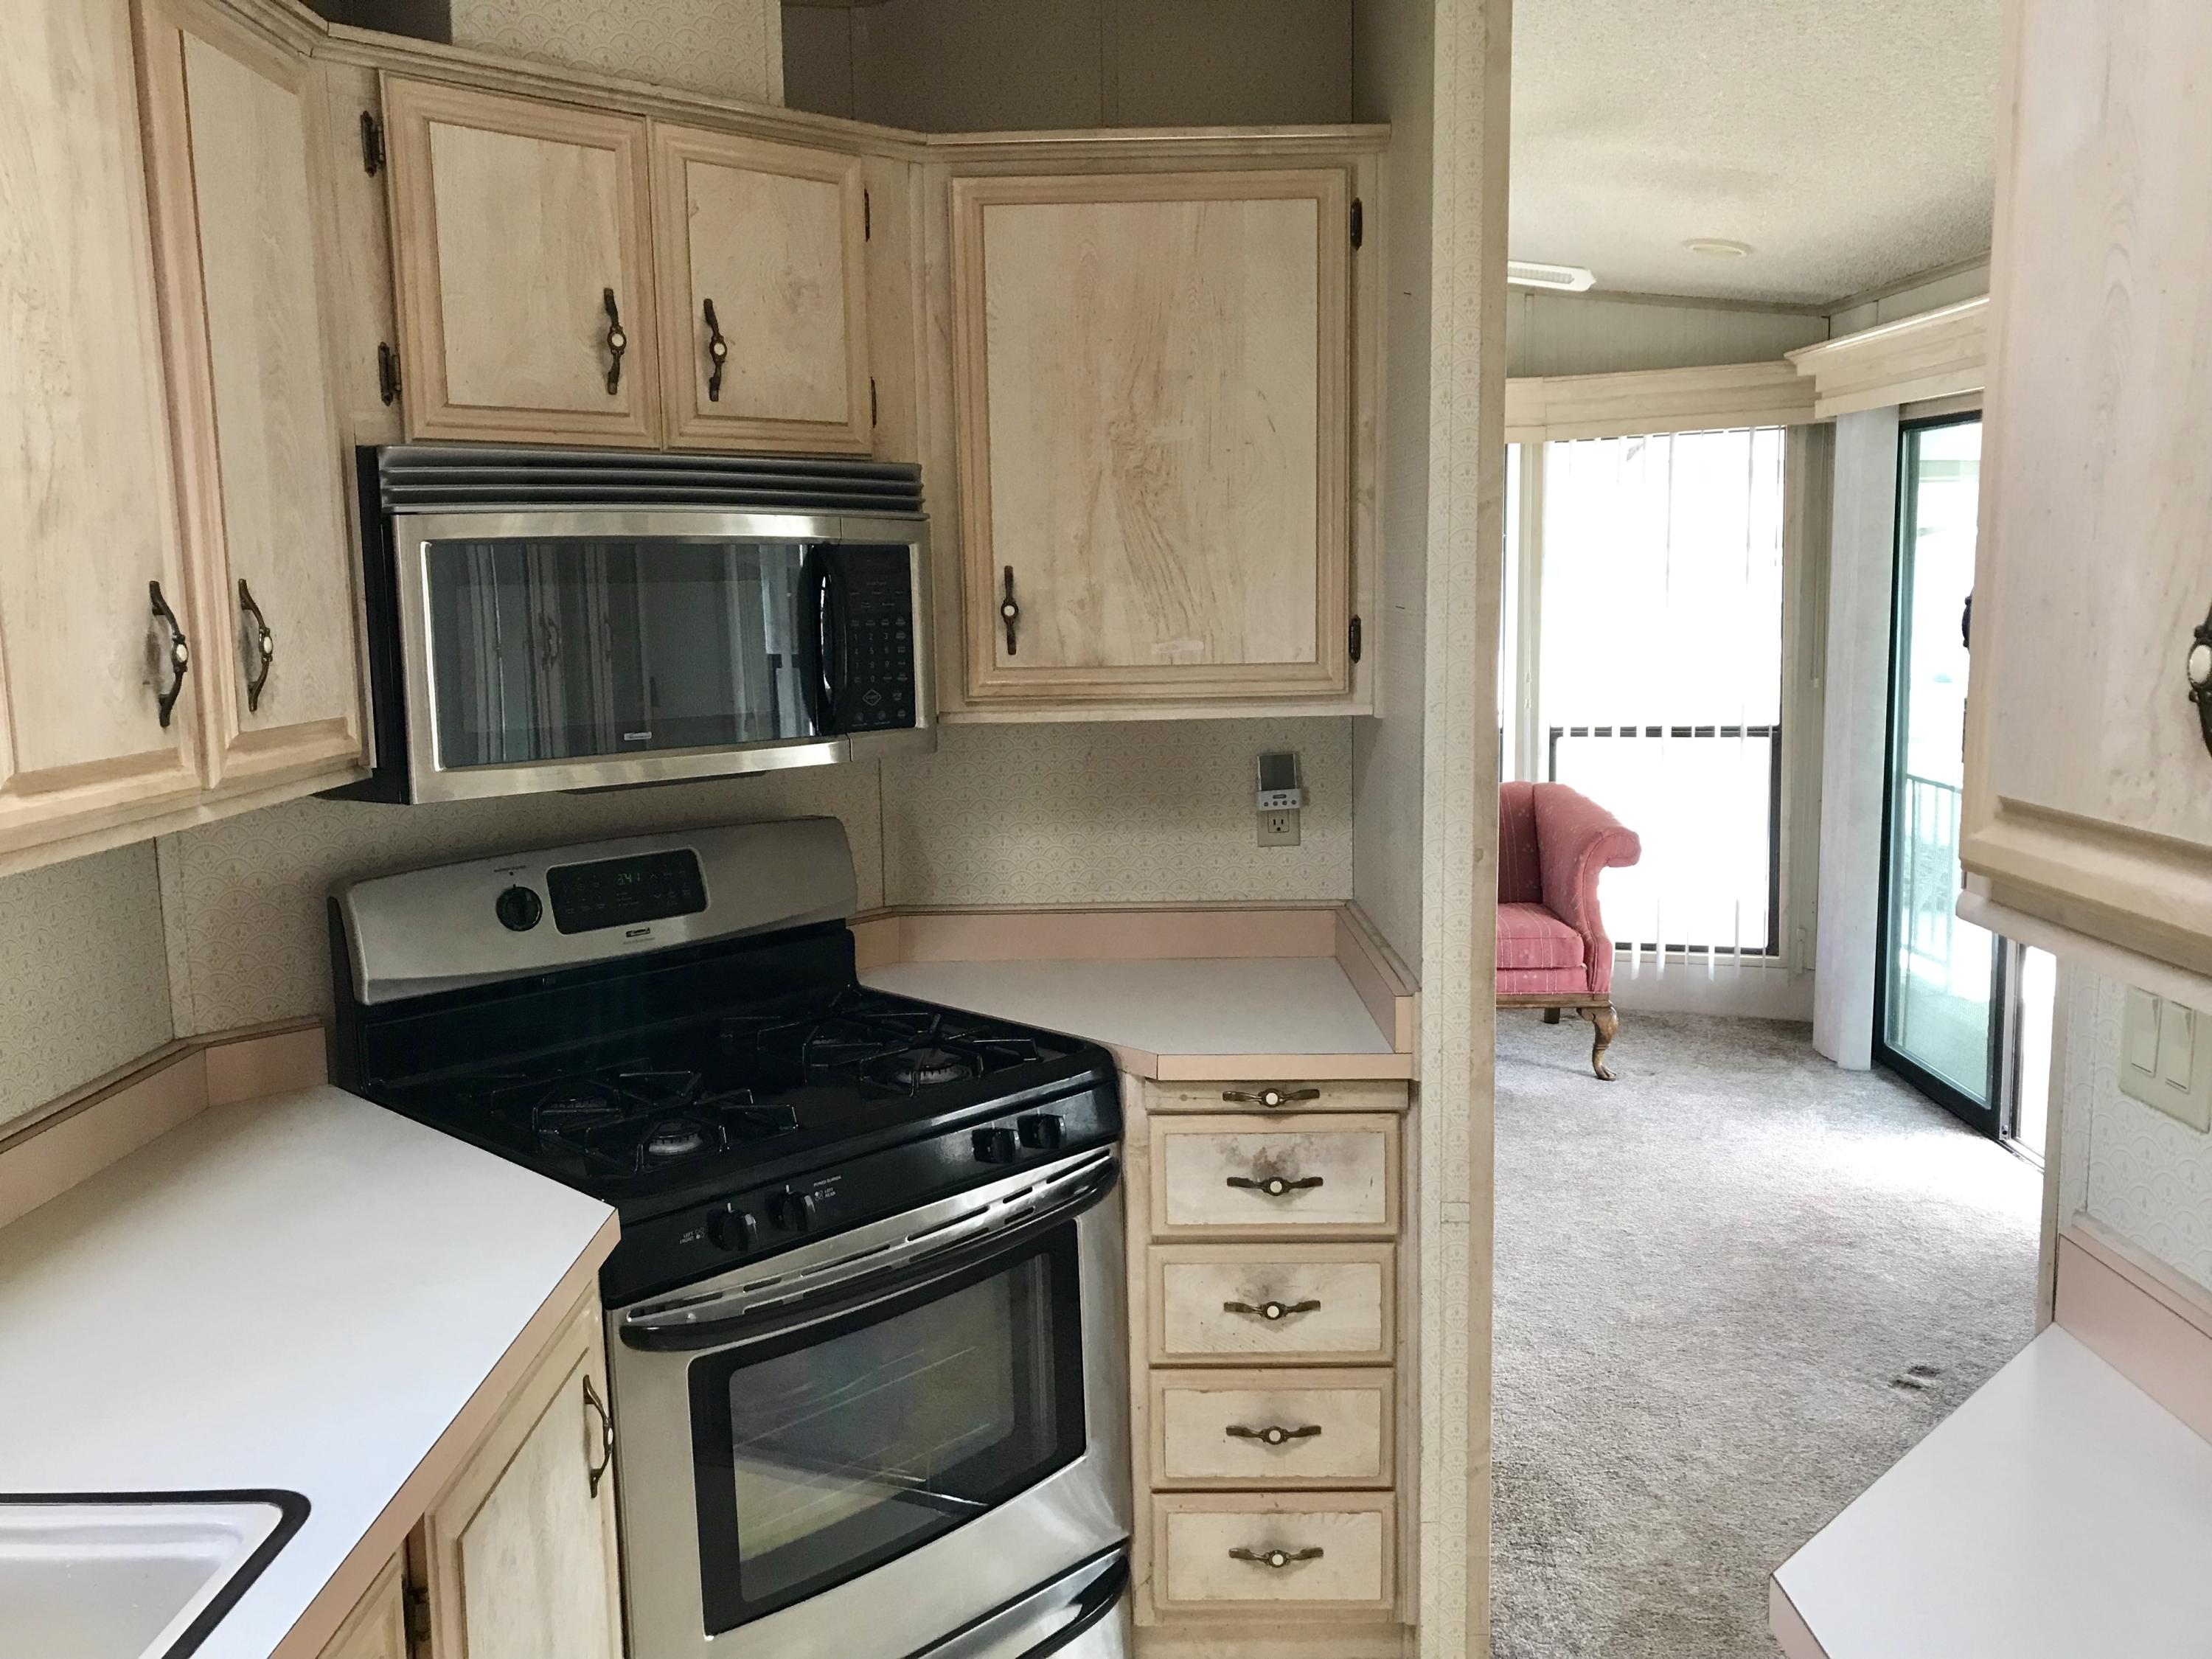 This park model has great potential! It has newer appliances (refrigerator, dishwasher, stove, microwave). The home has new carpet, study deck, and tons of white storage cabinets. The home is being sold in as-is condition.